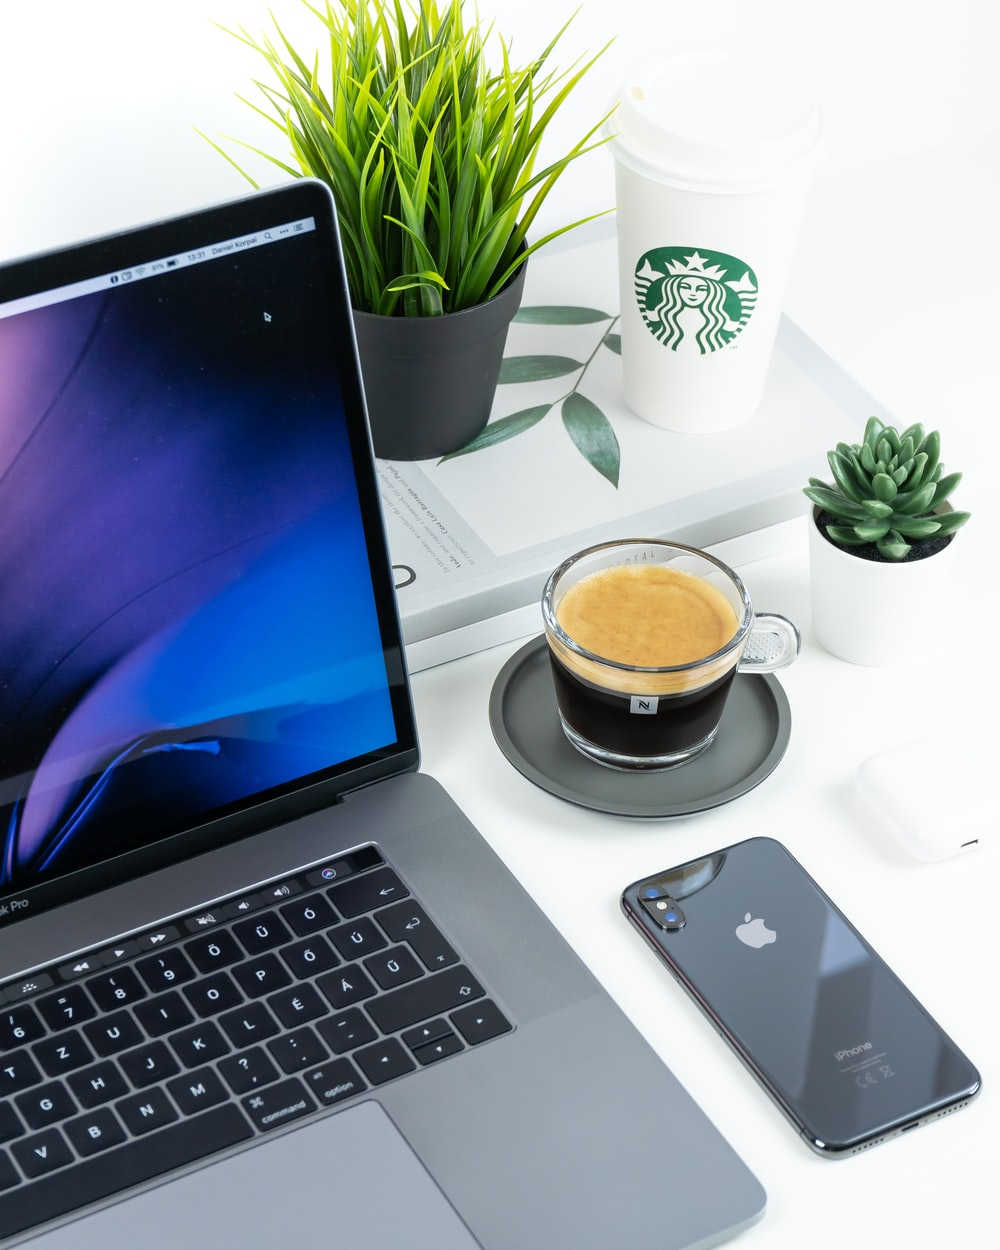 laptop beside iPhone and coffee in cup on table